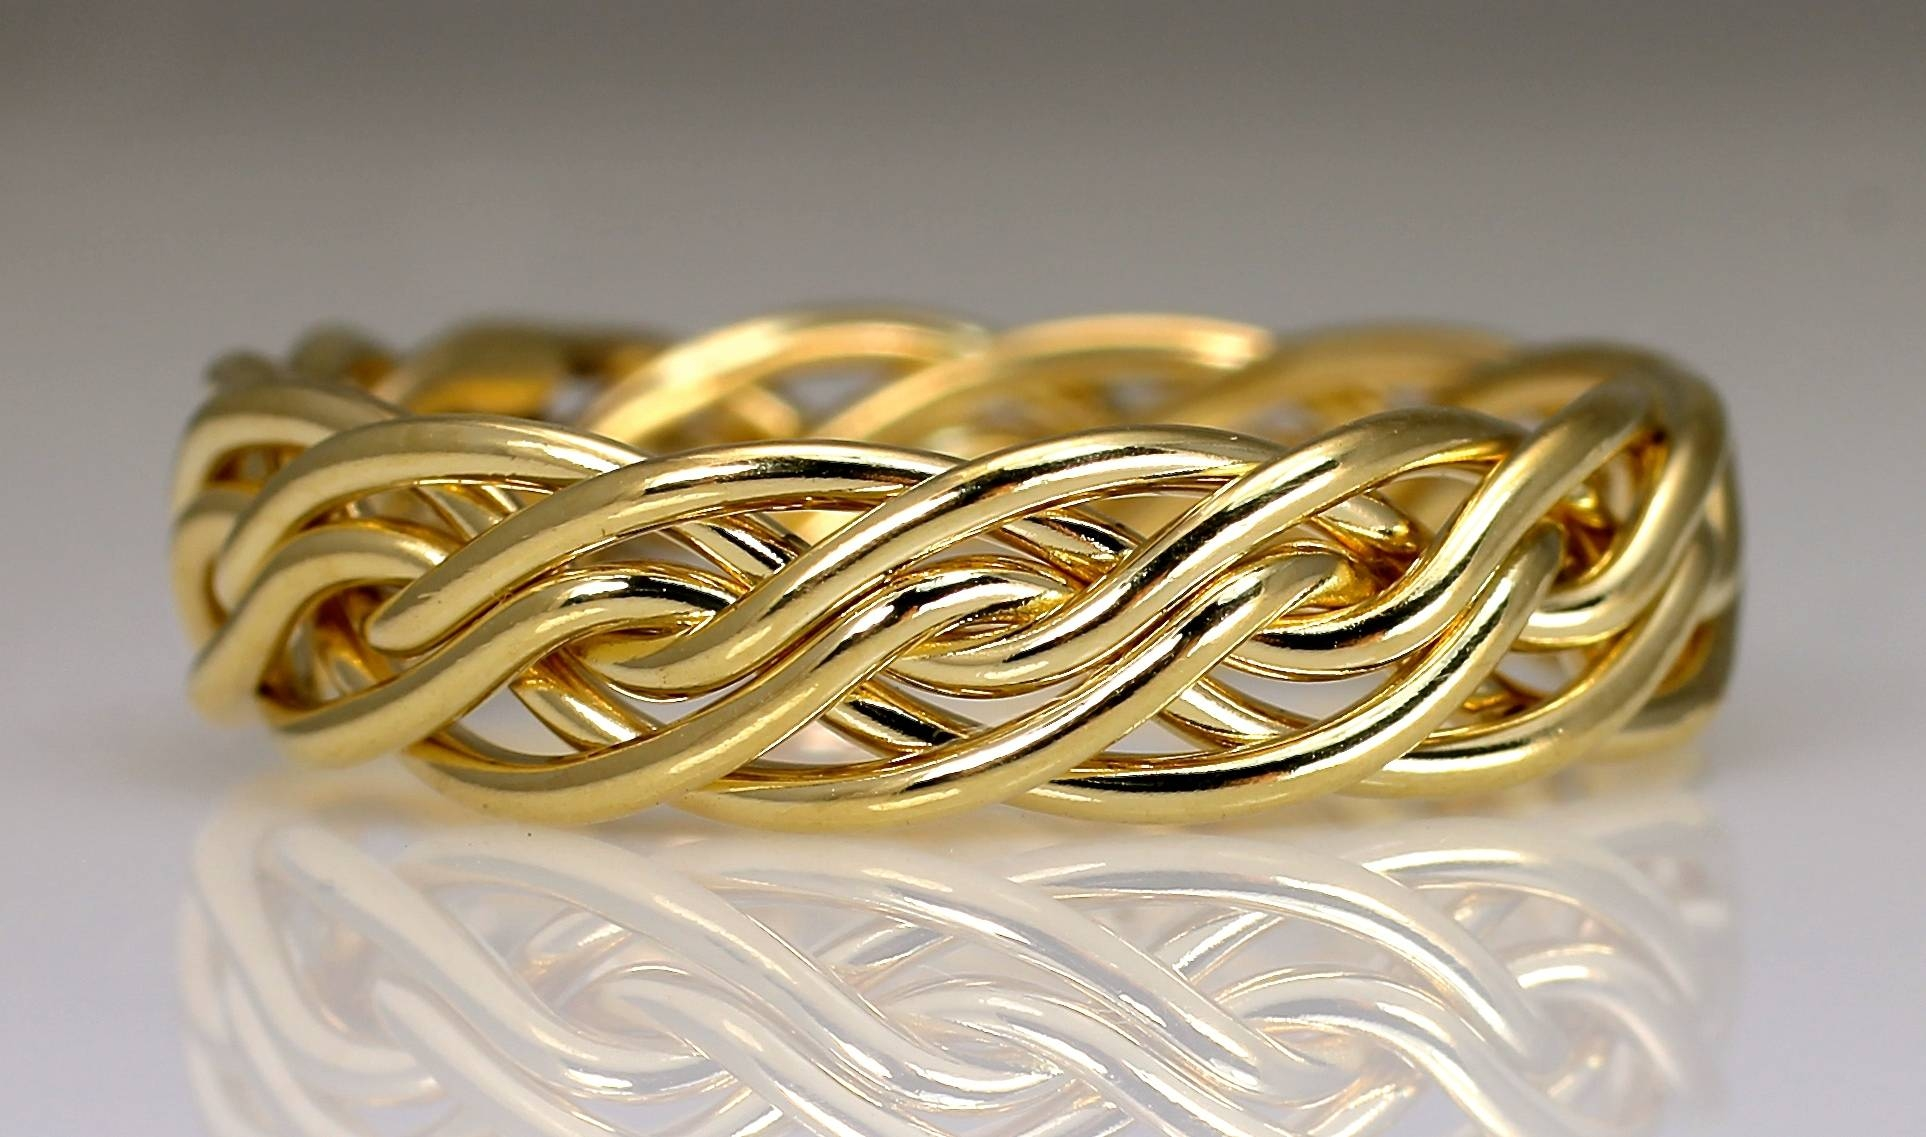 Six Strand Open Weave Braided Wedding Ringsartist Todd Alan Pertaining To Mens Braided Wedding Bands (View 15 of 15)